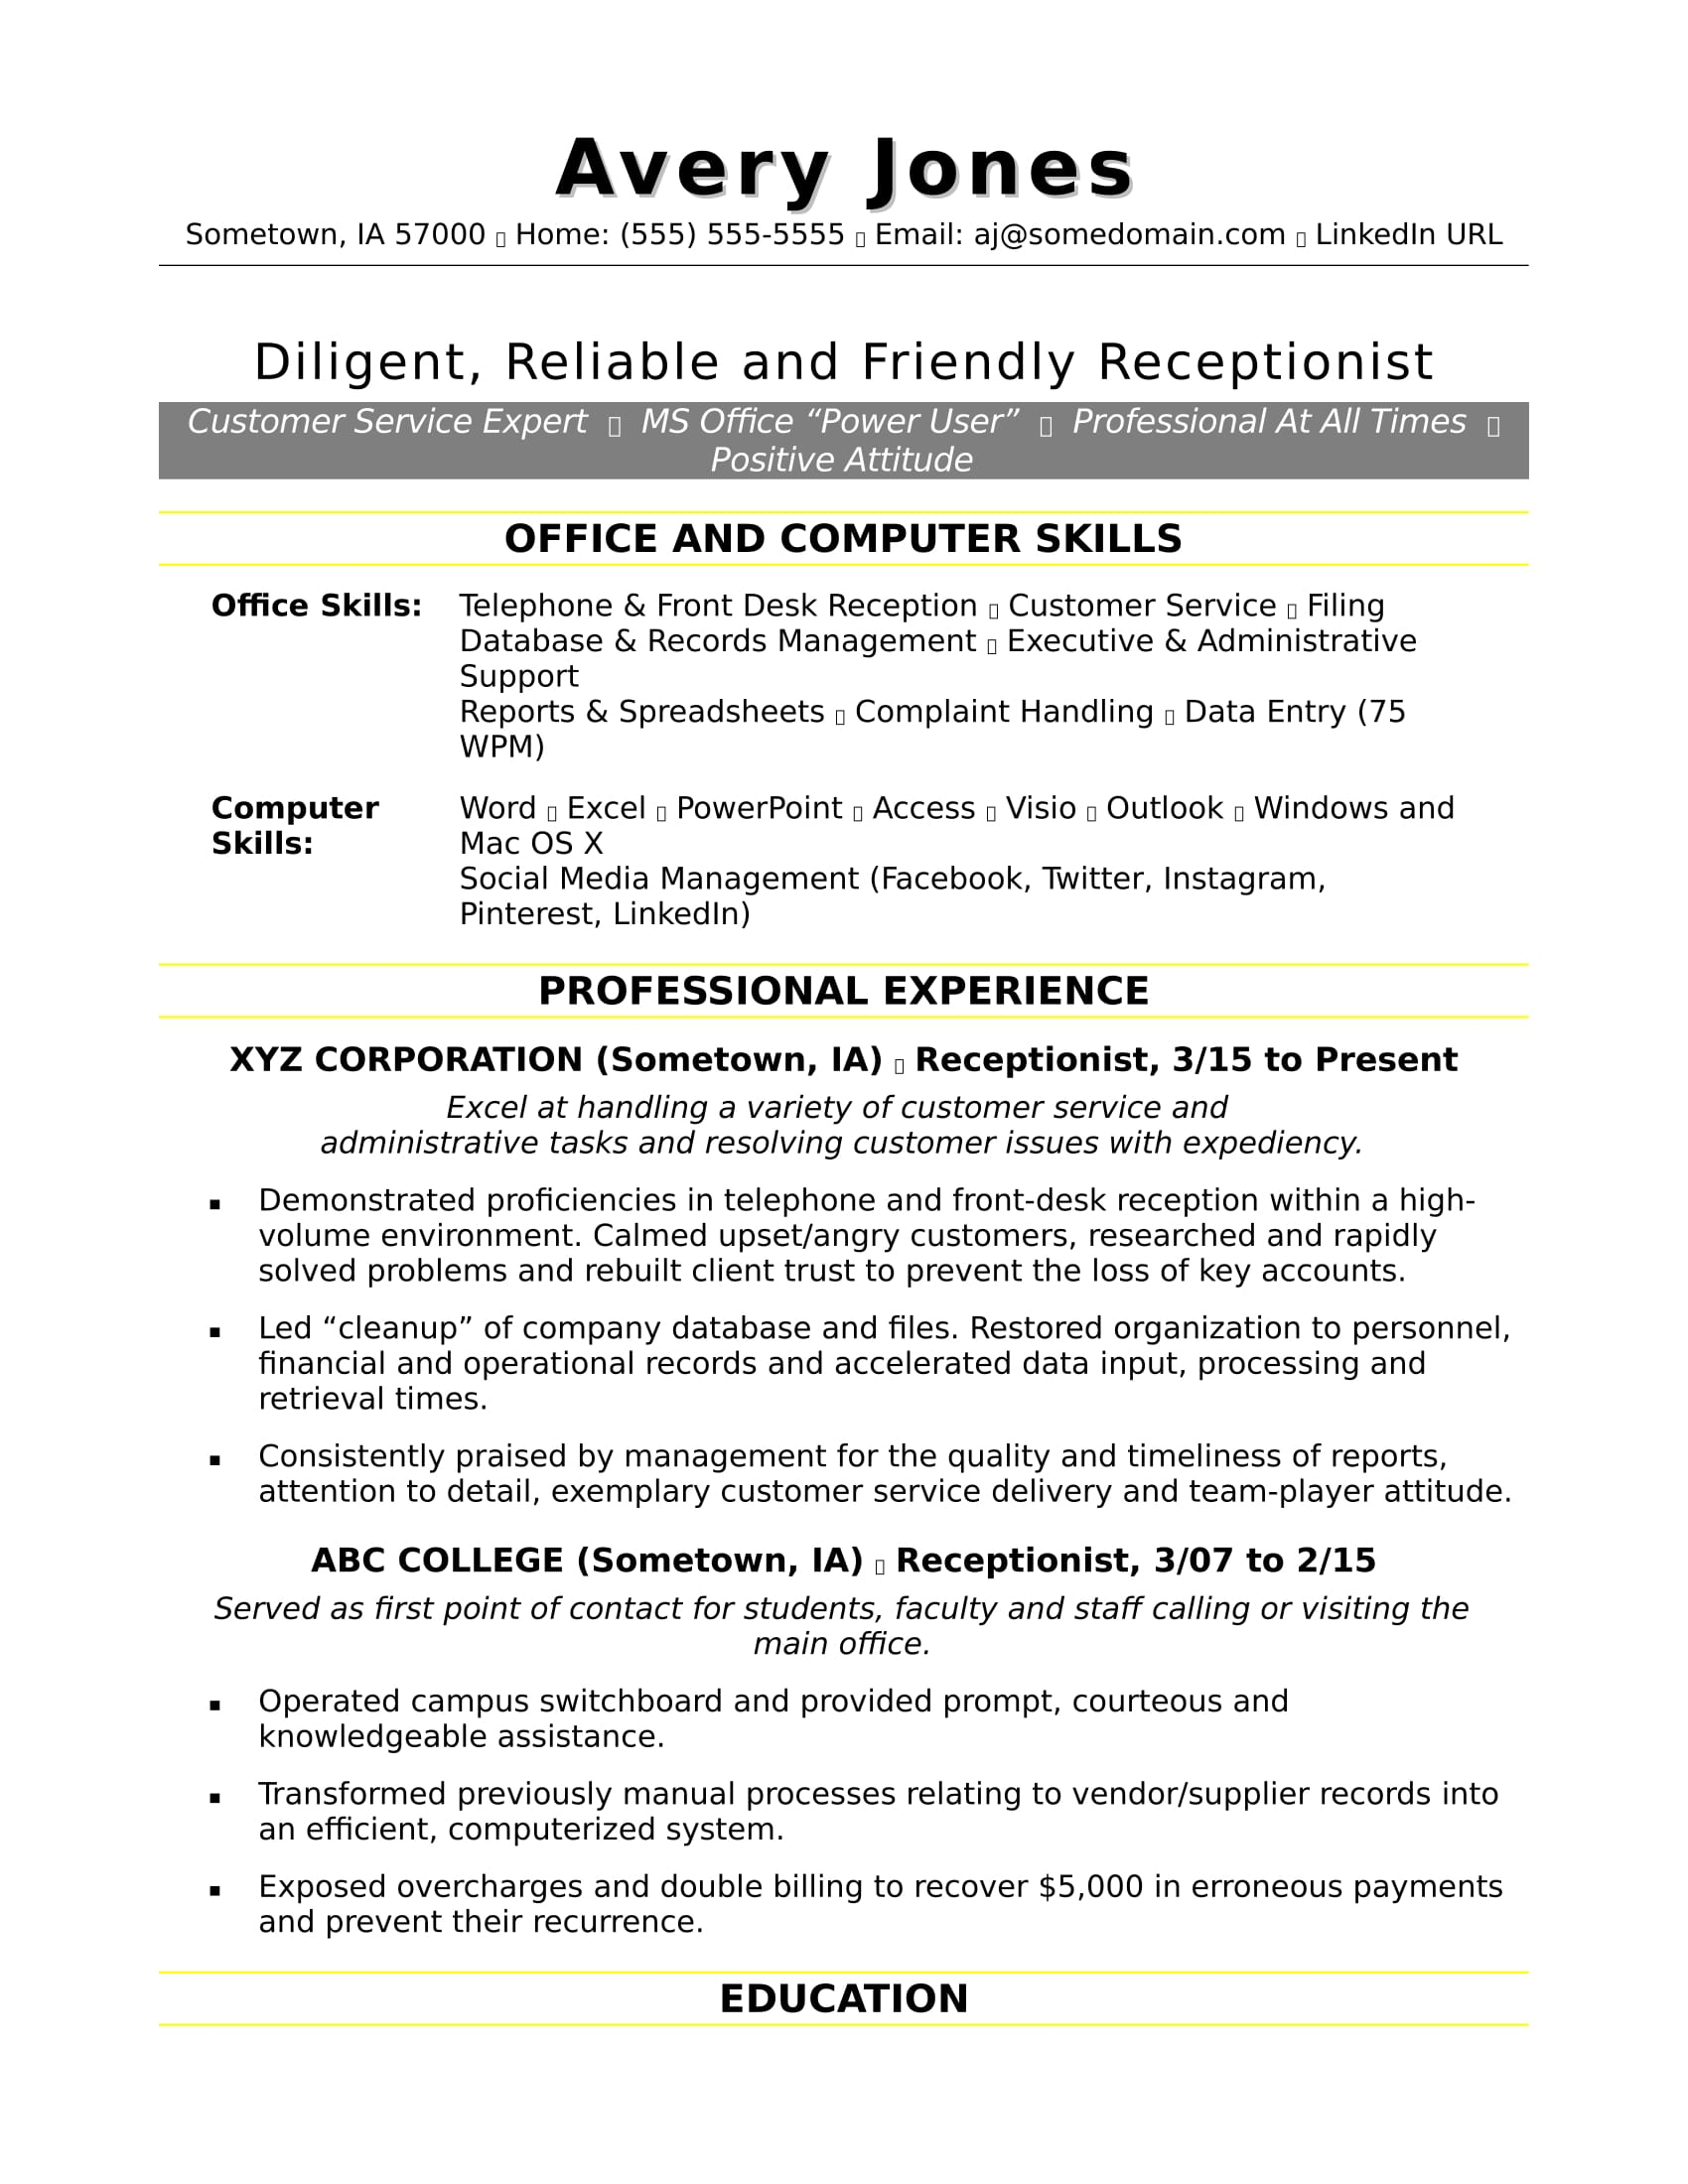 Sample Resume For A Receptionist  Words To Use In Your Resume